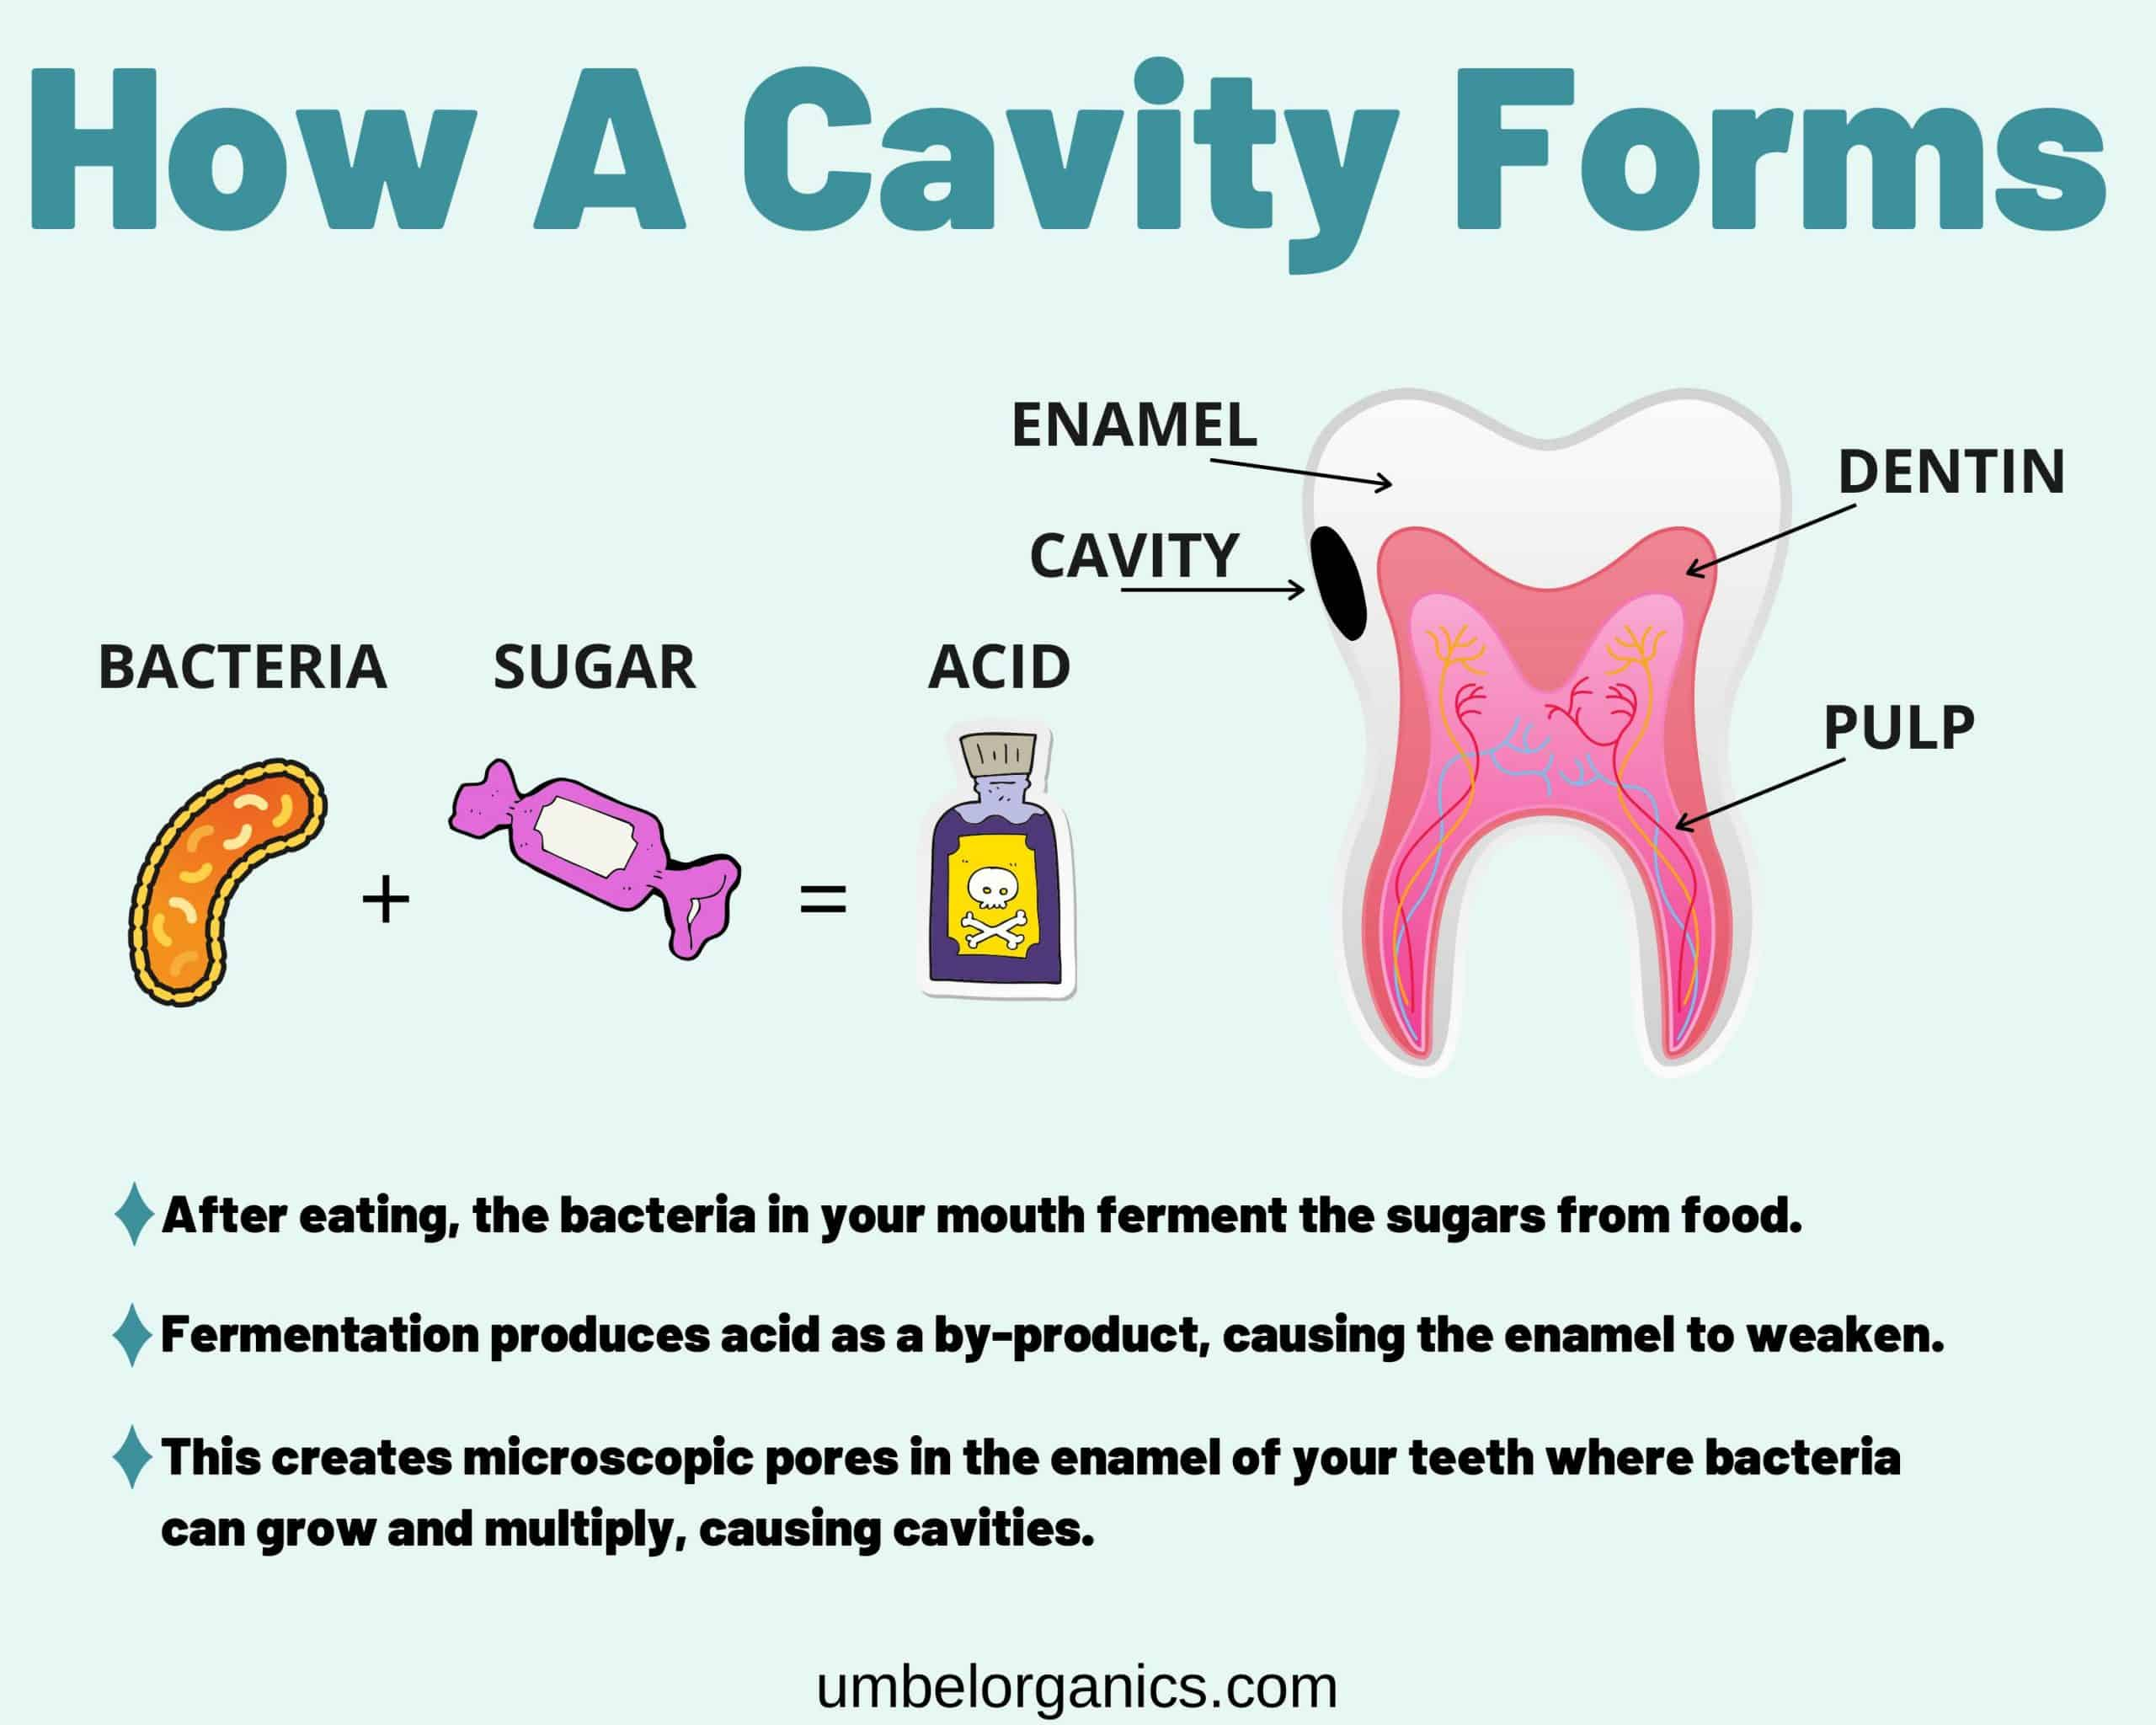 How a cavity forms infographic